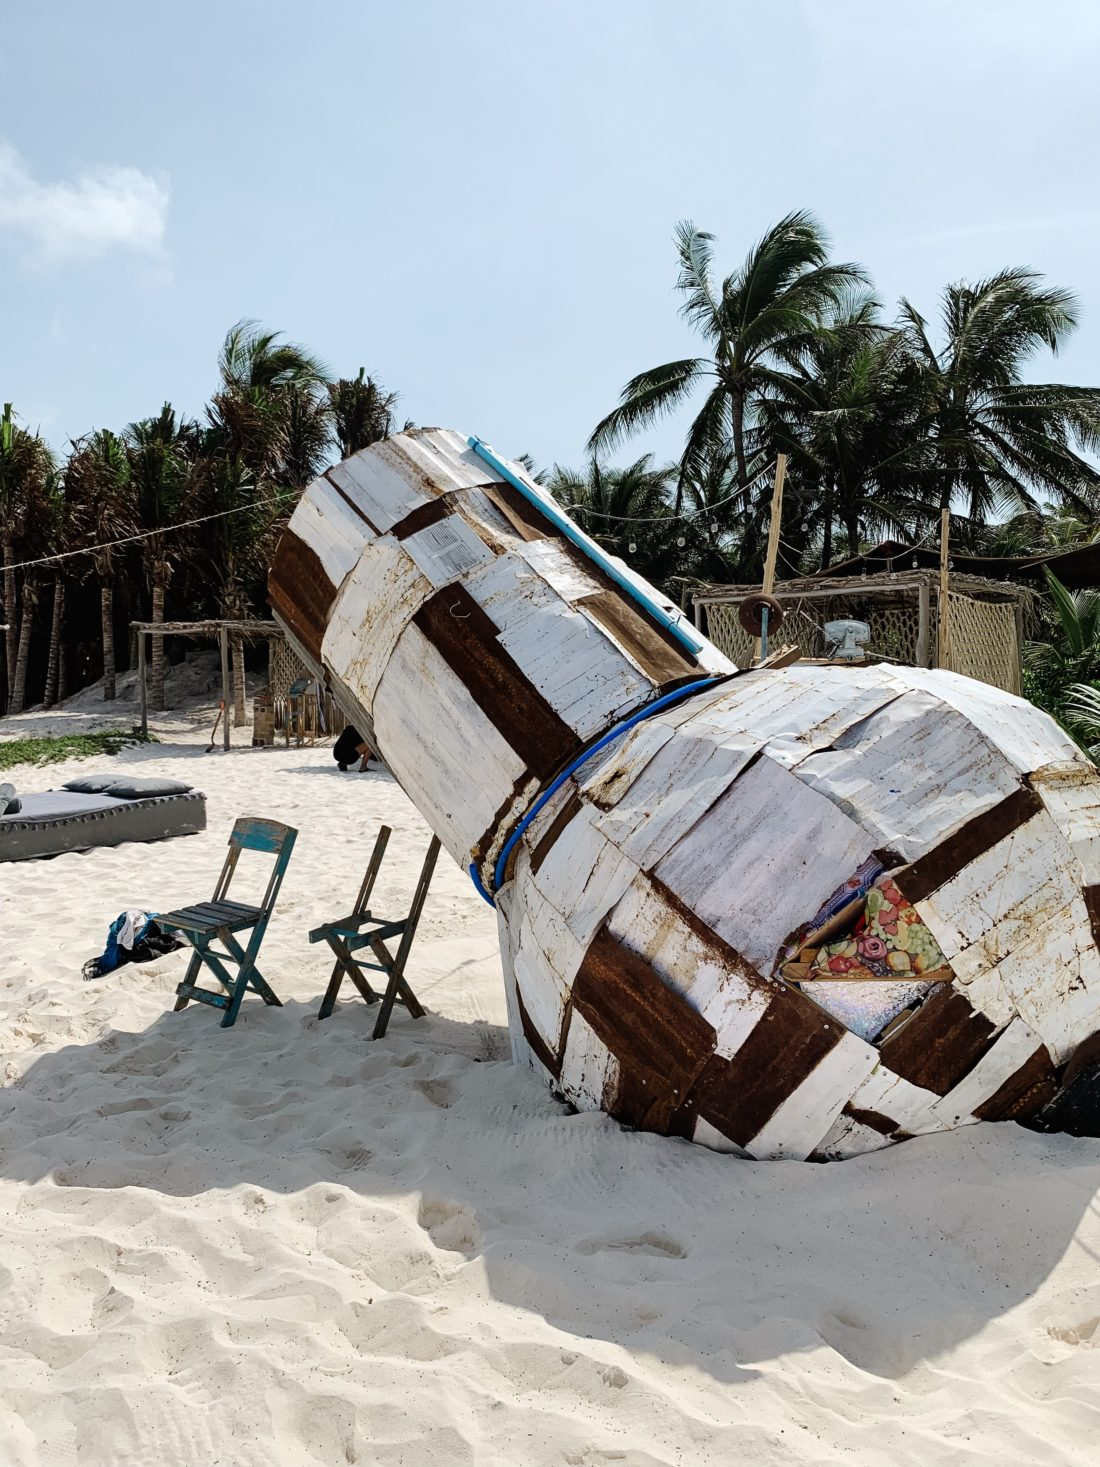 A wooden sculpture on the beach in Tulum Mexico